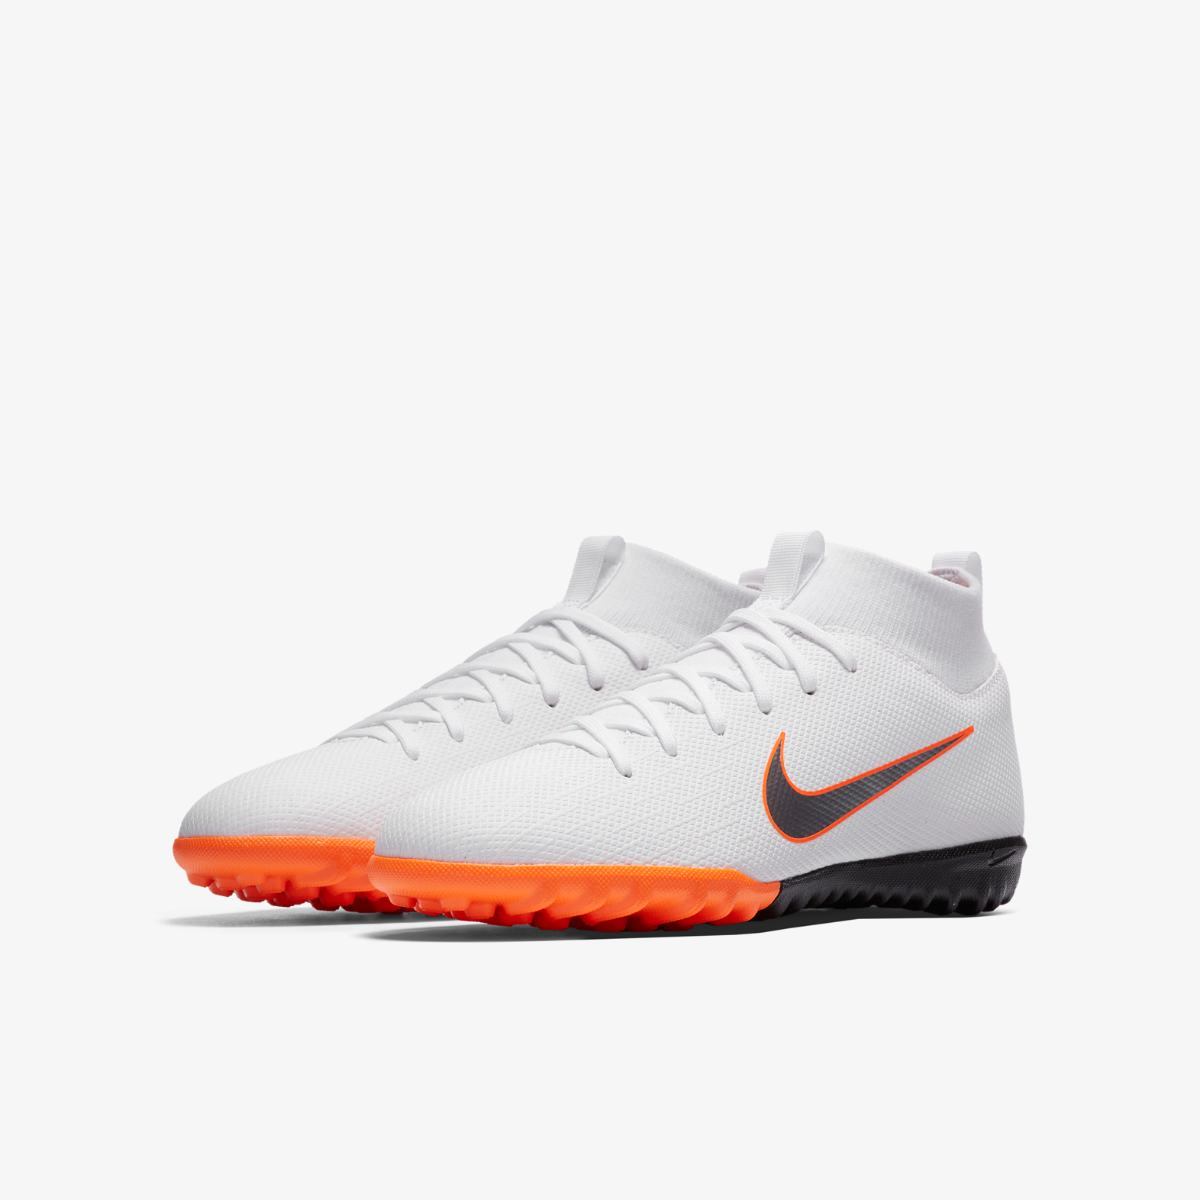 NIKE SUPERFLYX VI ACADEMY GS TF AH7344-107 JR